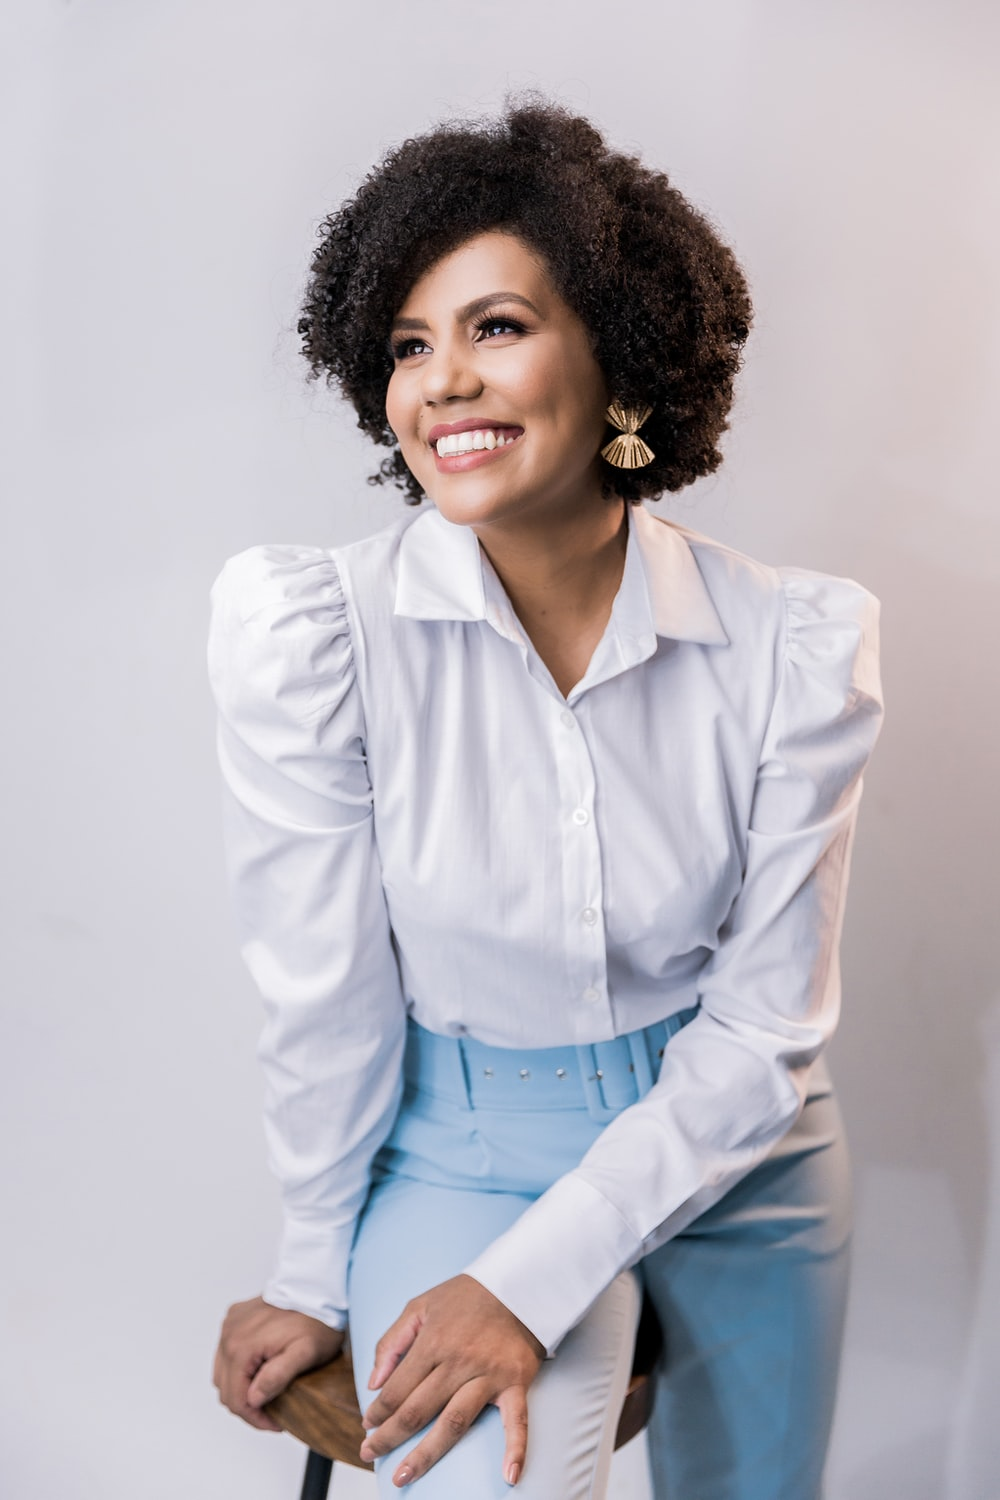 woman in white dress shirt and blue denim jeans smiling